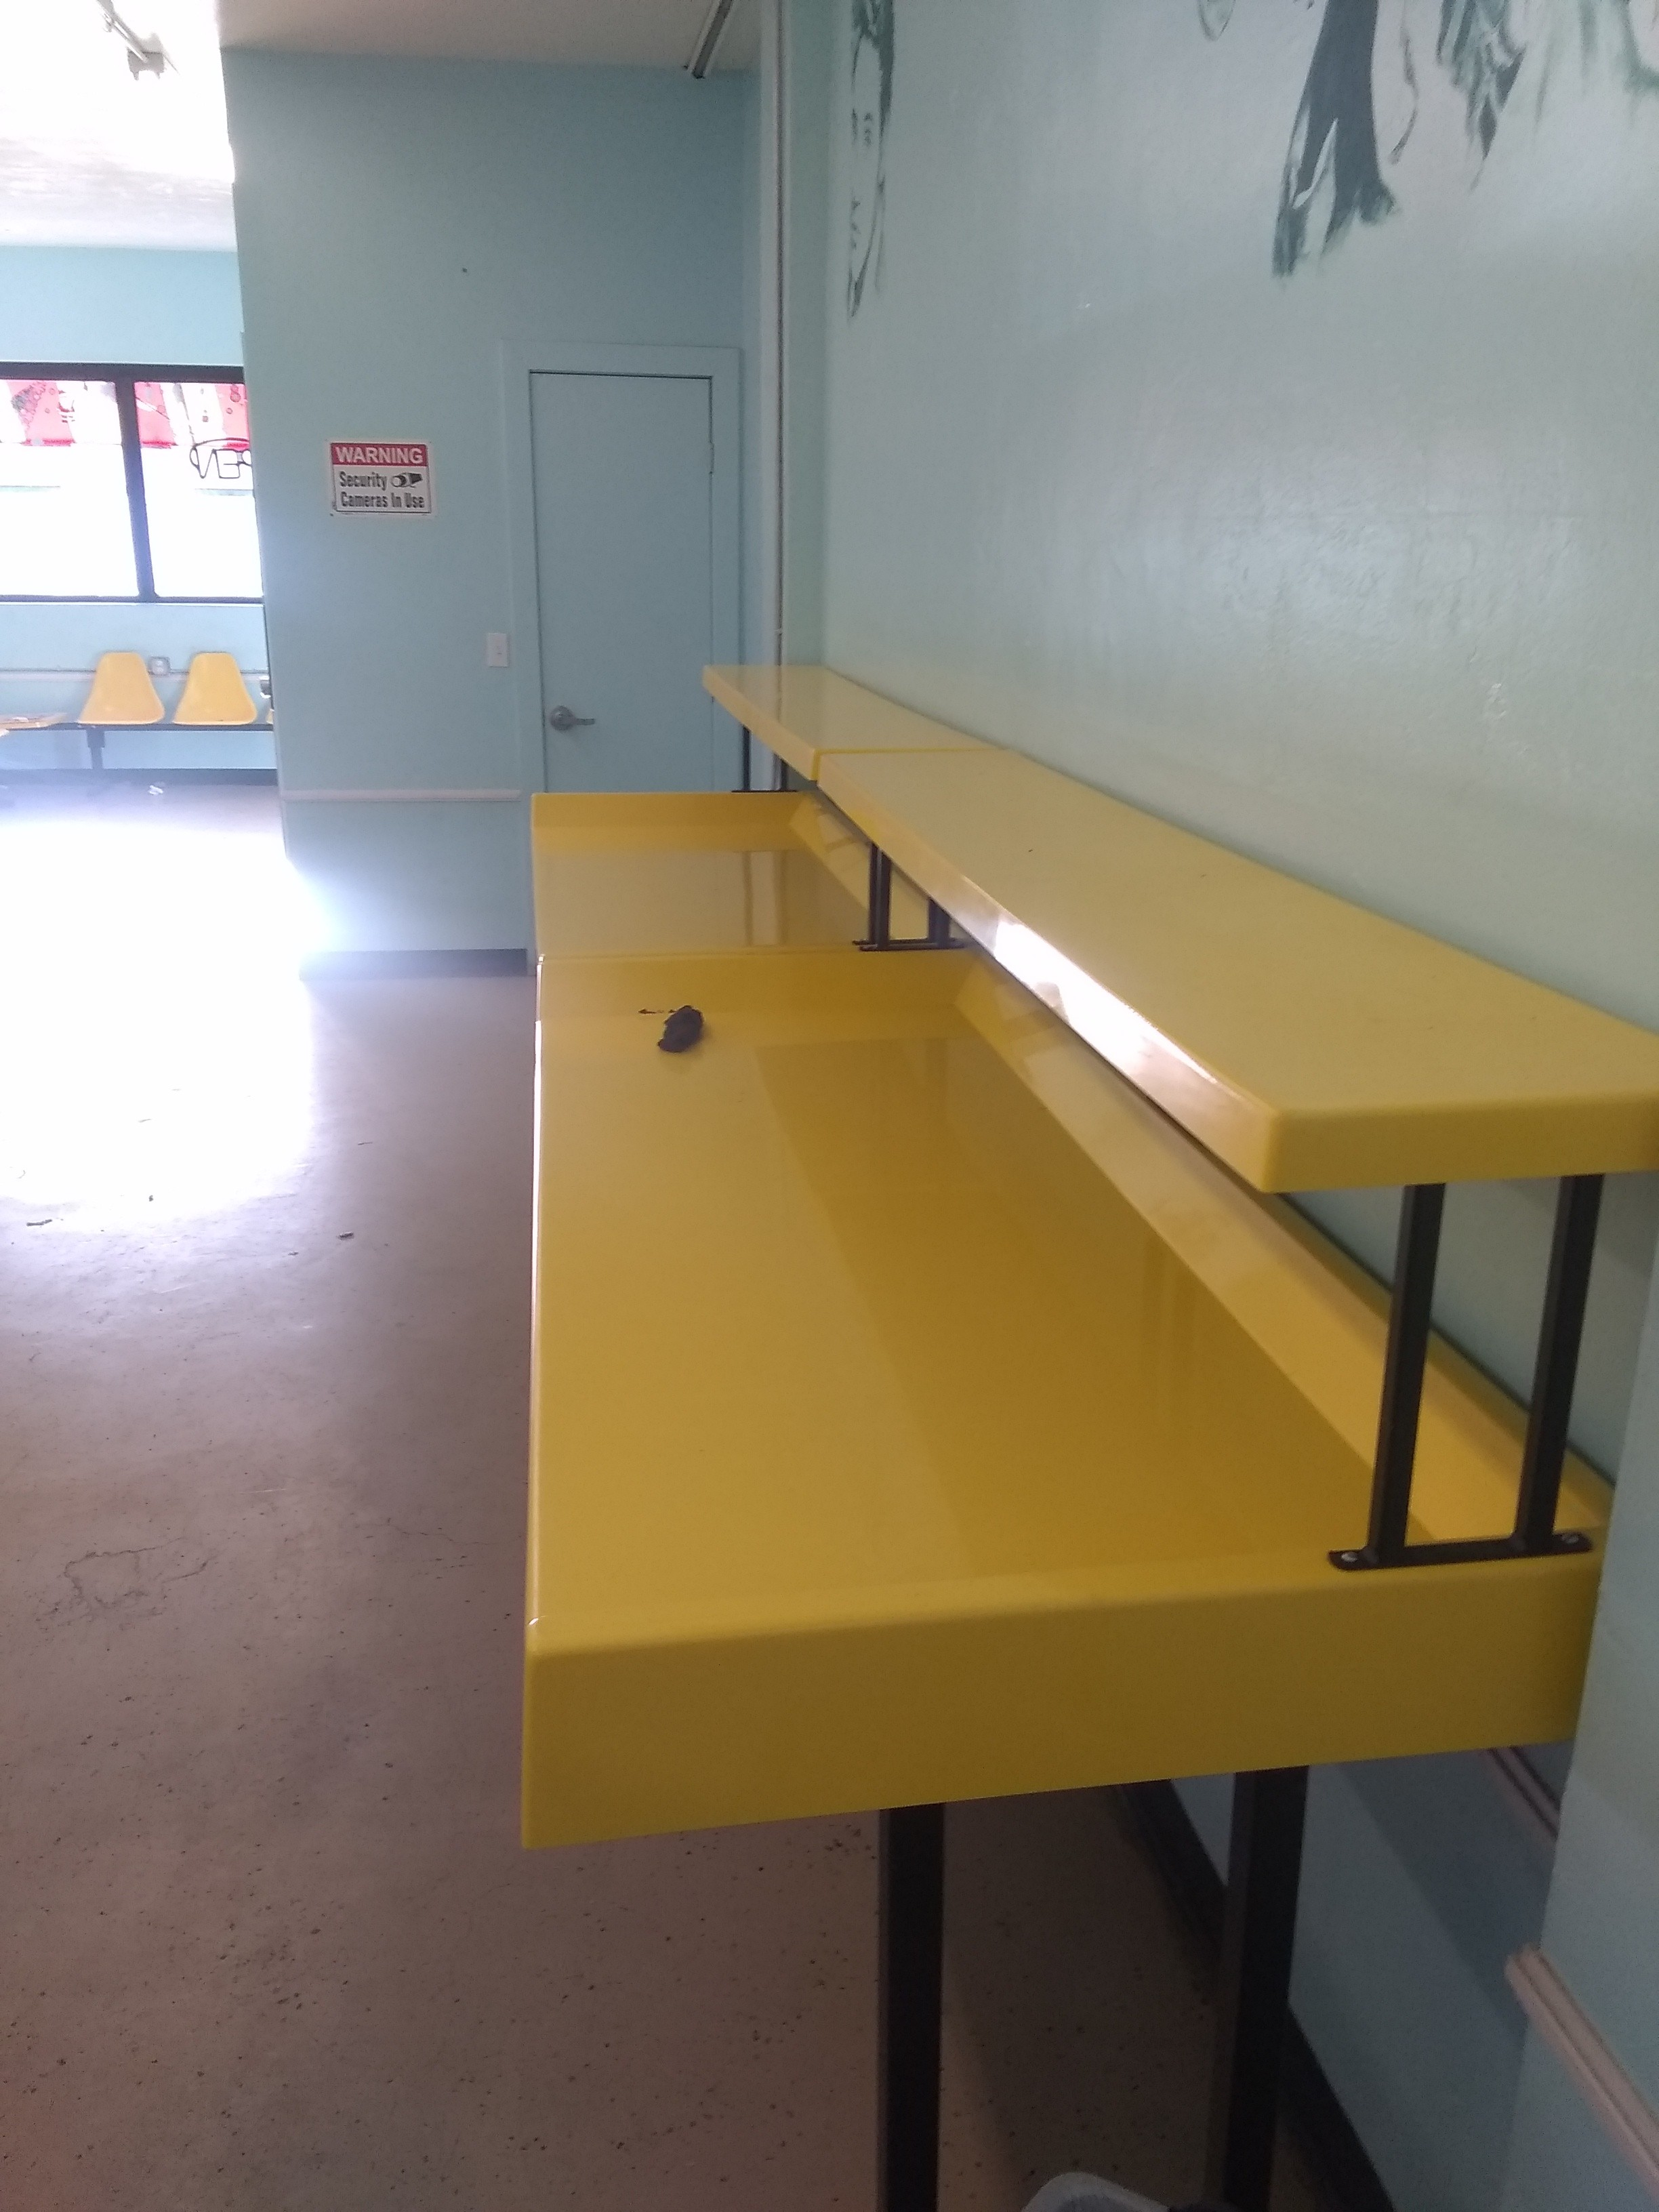 4 yellow folding tables with shelf and 5 chair sets less than 3 years old 1800 for all cash only no shipping 520 406 3126 located in tucson az